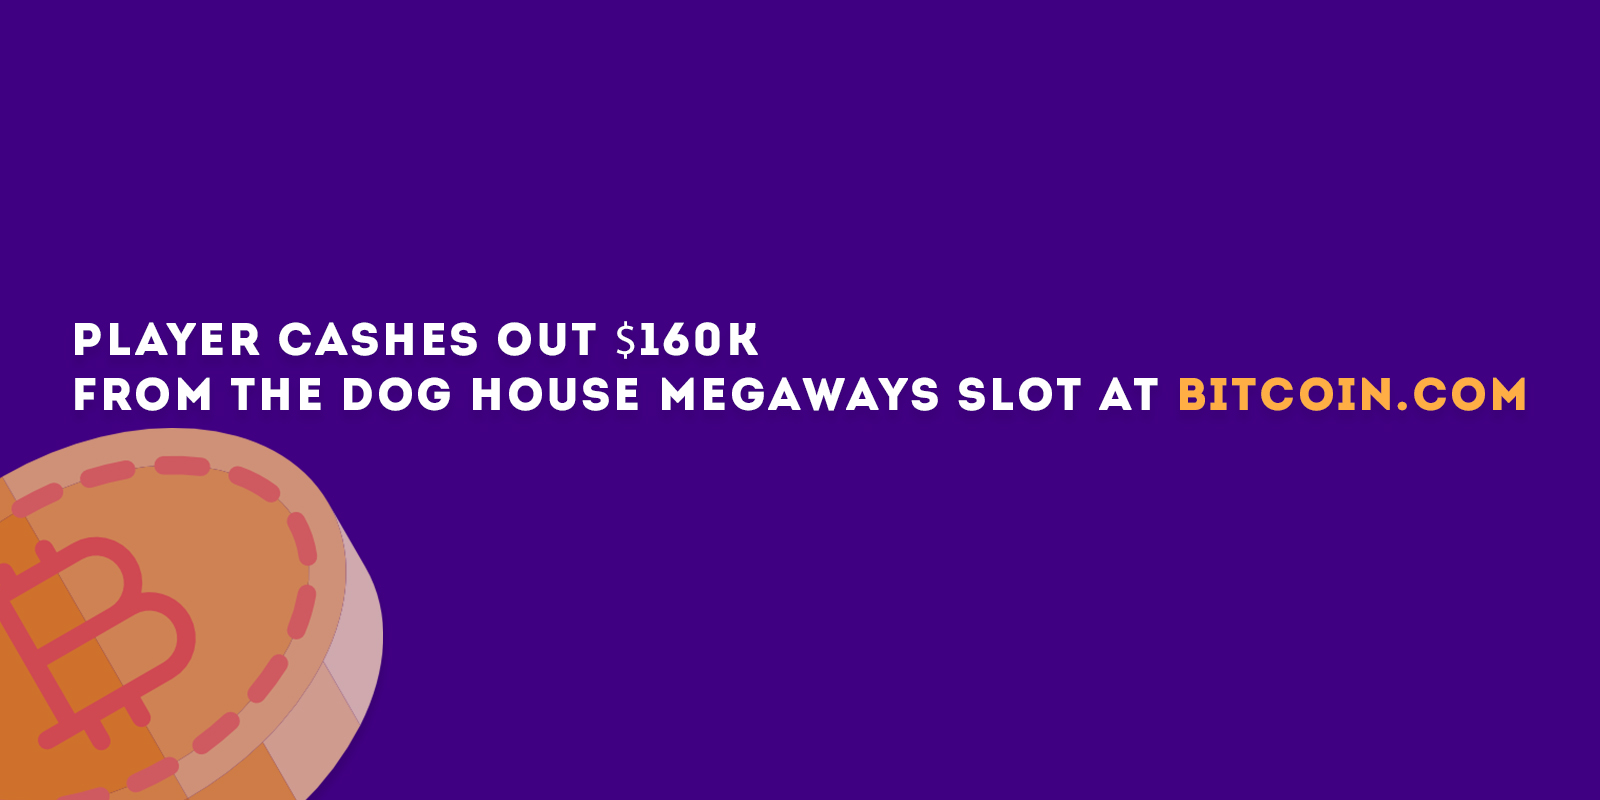 Player Cashes out $160K from The Dog House Megaways slot at Bitcoin.com